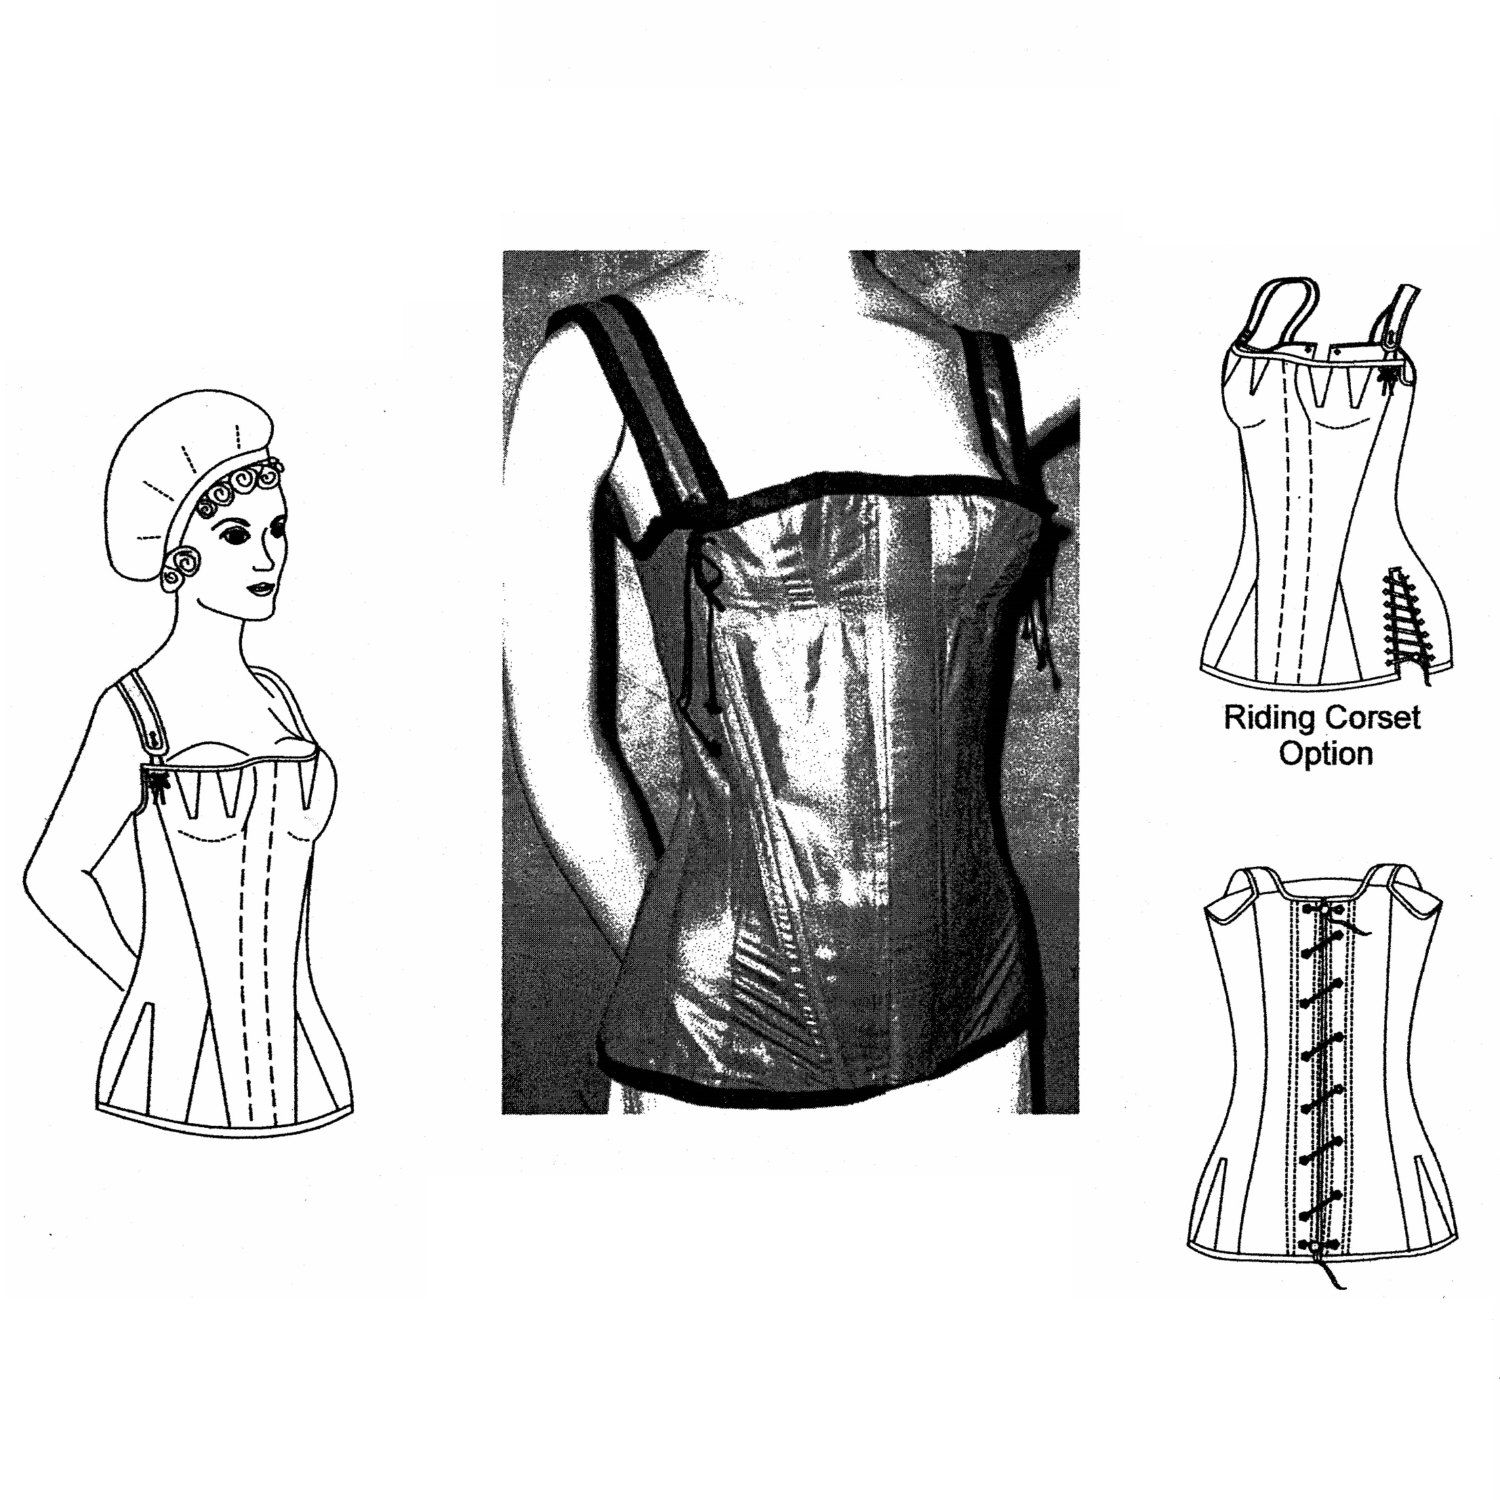 1315590d24e MM18103 - 1800 -1820 Regency Corset Pattern Sewing Pattern by Mantua Maker  by patternsoftime on